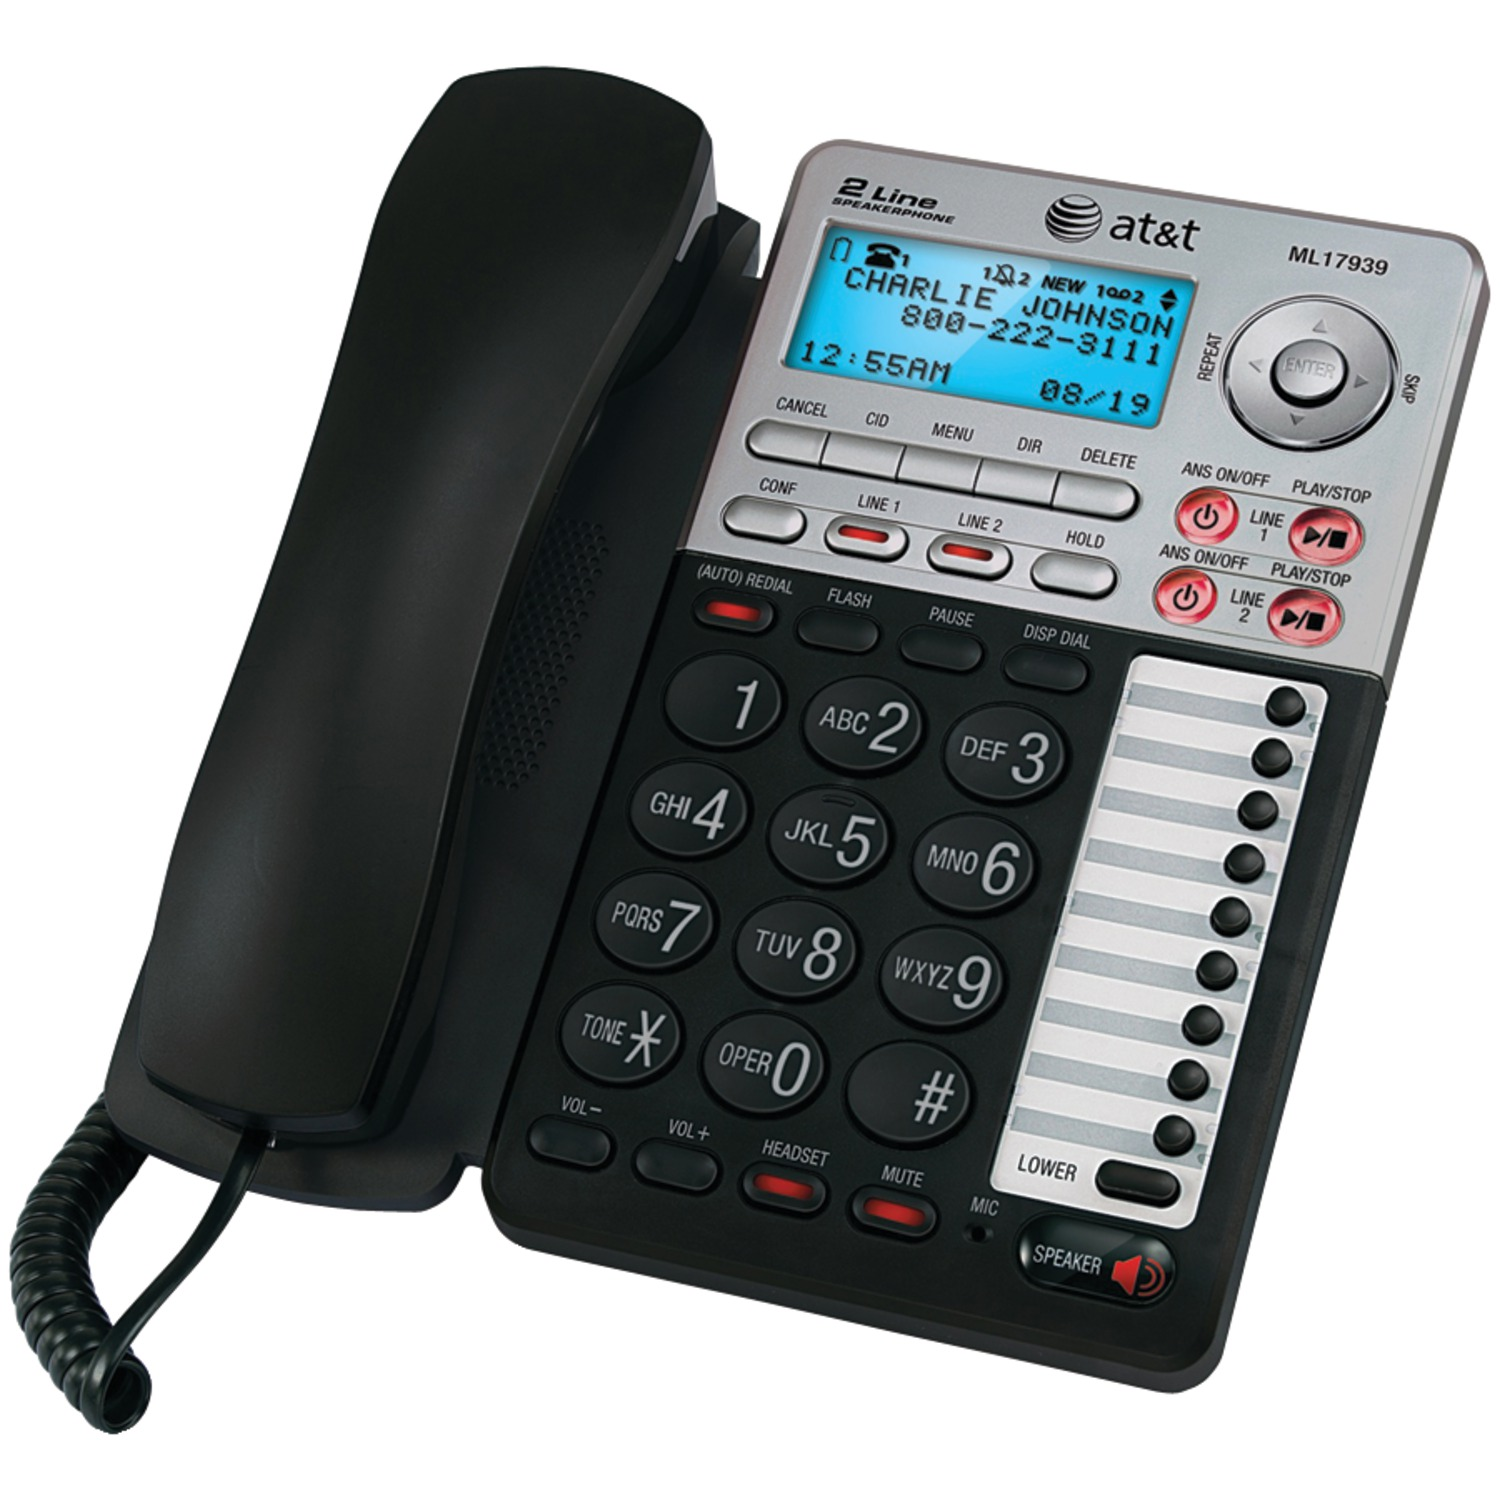 AT&T ML17939 Two-Line Speaker Phone with Caller ID and Digital Answering System by AT&T